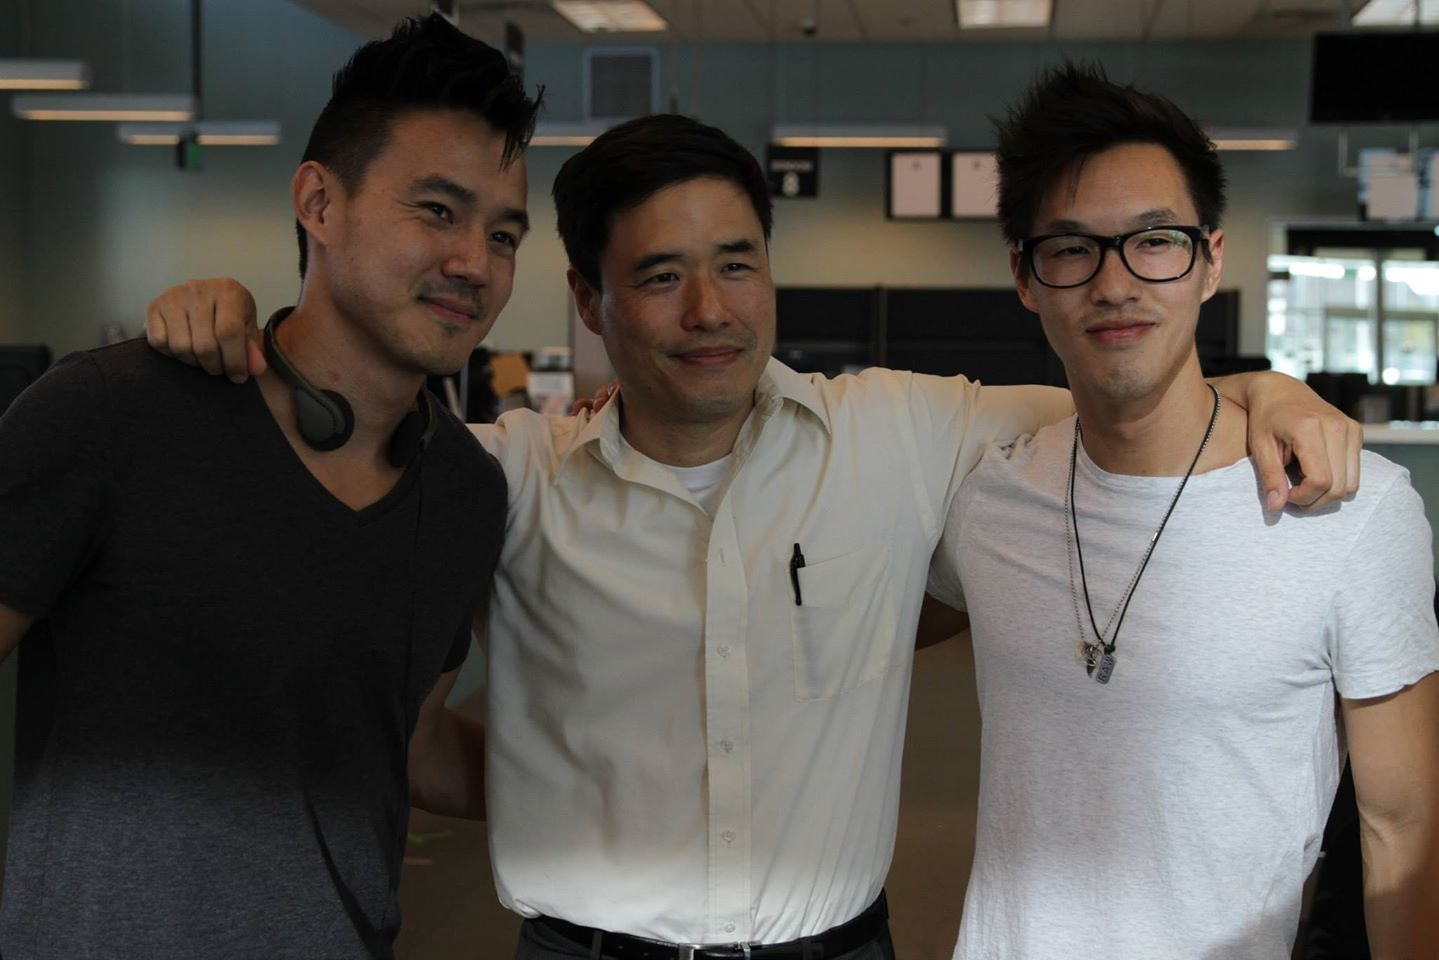 stages of a relationship wong fu movie